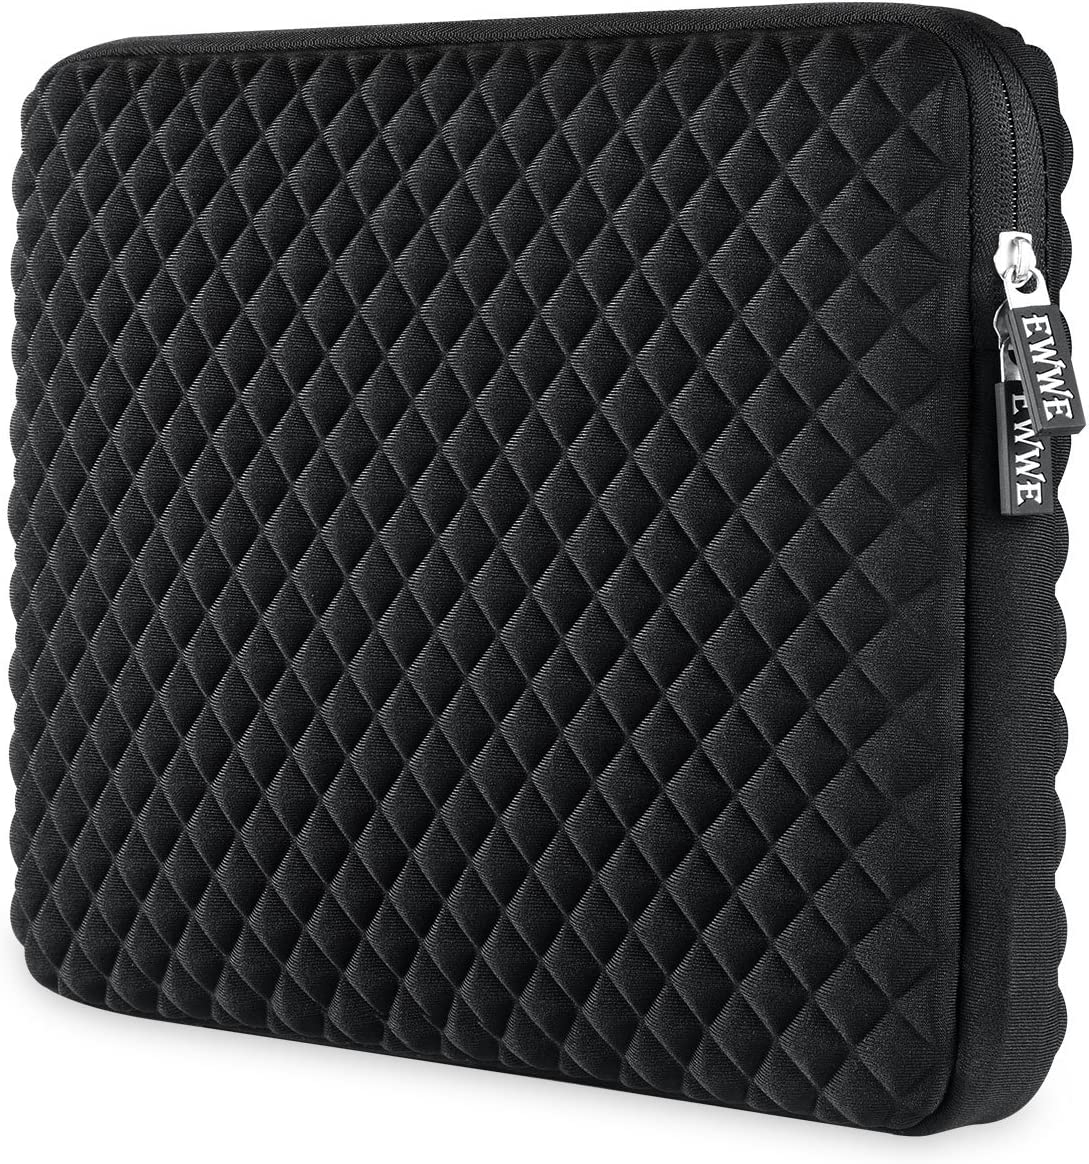 """EWWE 360° Protective Laptop Sleeve Case Cover for Apple 13"""" New MacBook Pro Touch Bar A1706 & A1708 